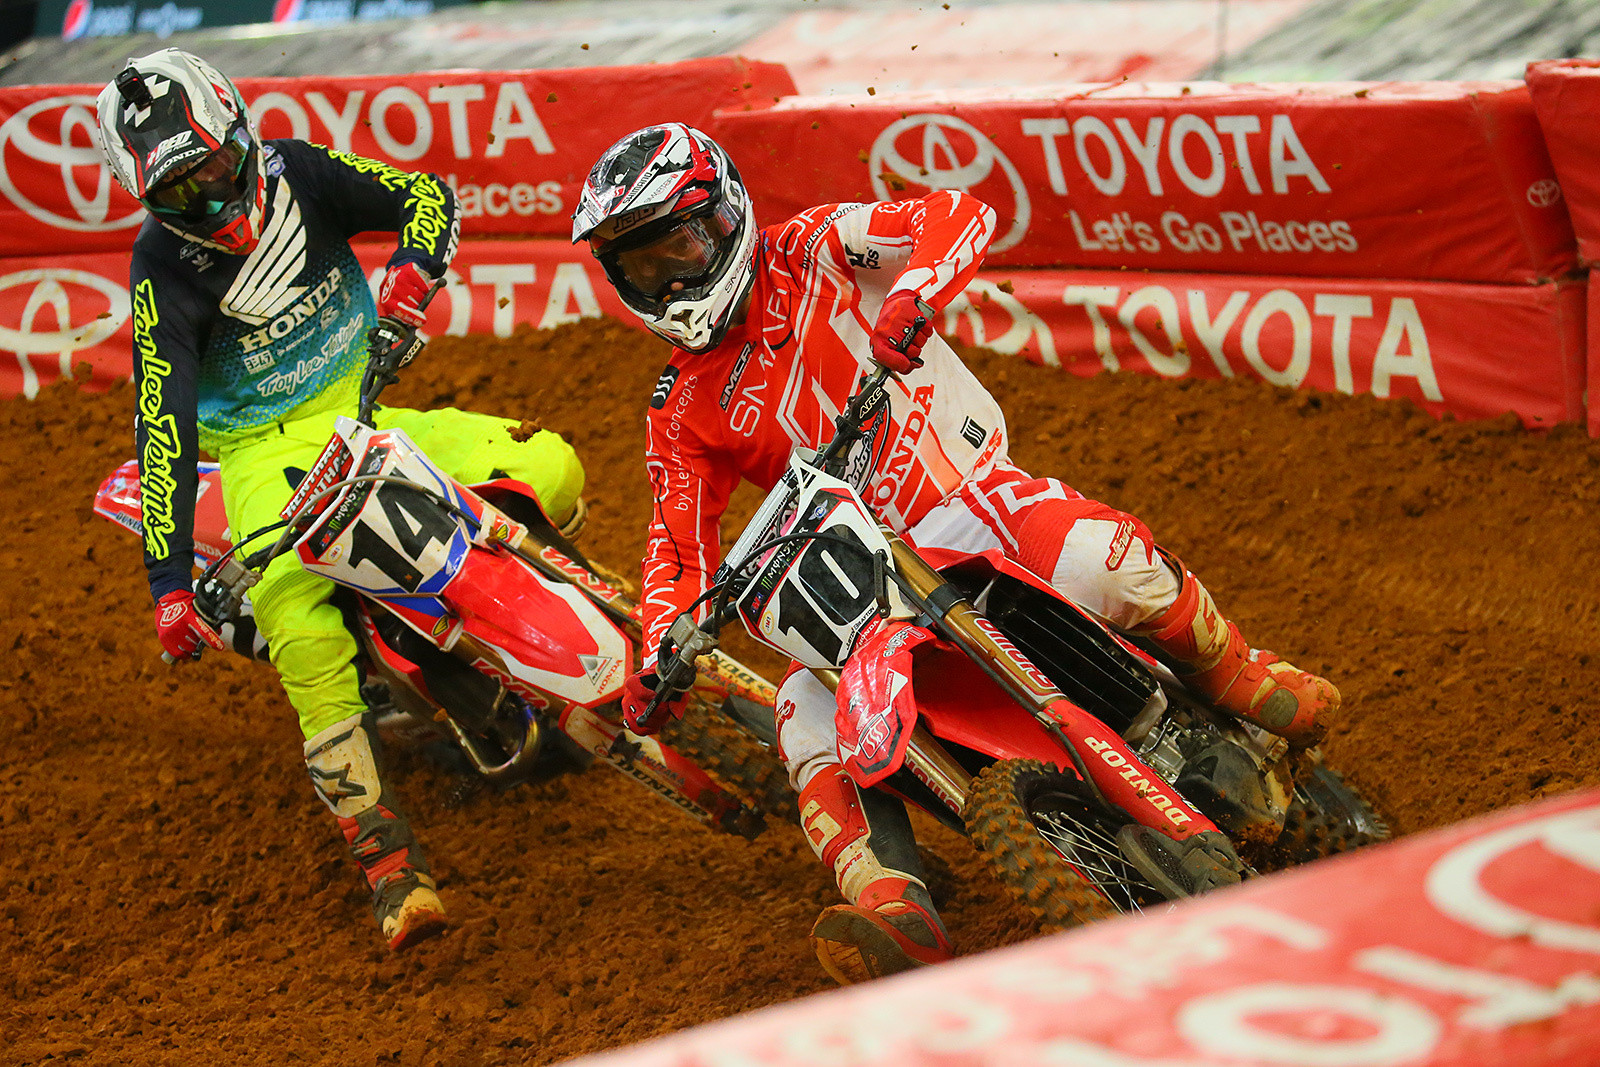 Justin Brayton and Cole Seely - Photo Blast: Arlington - Motocross Pictures - Vital MX